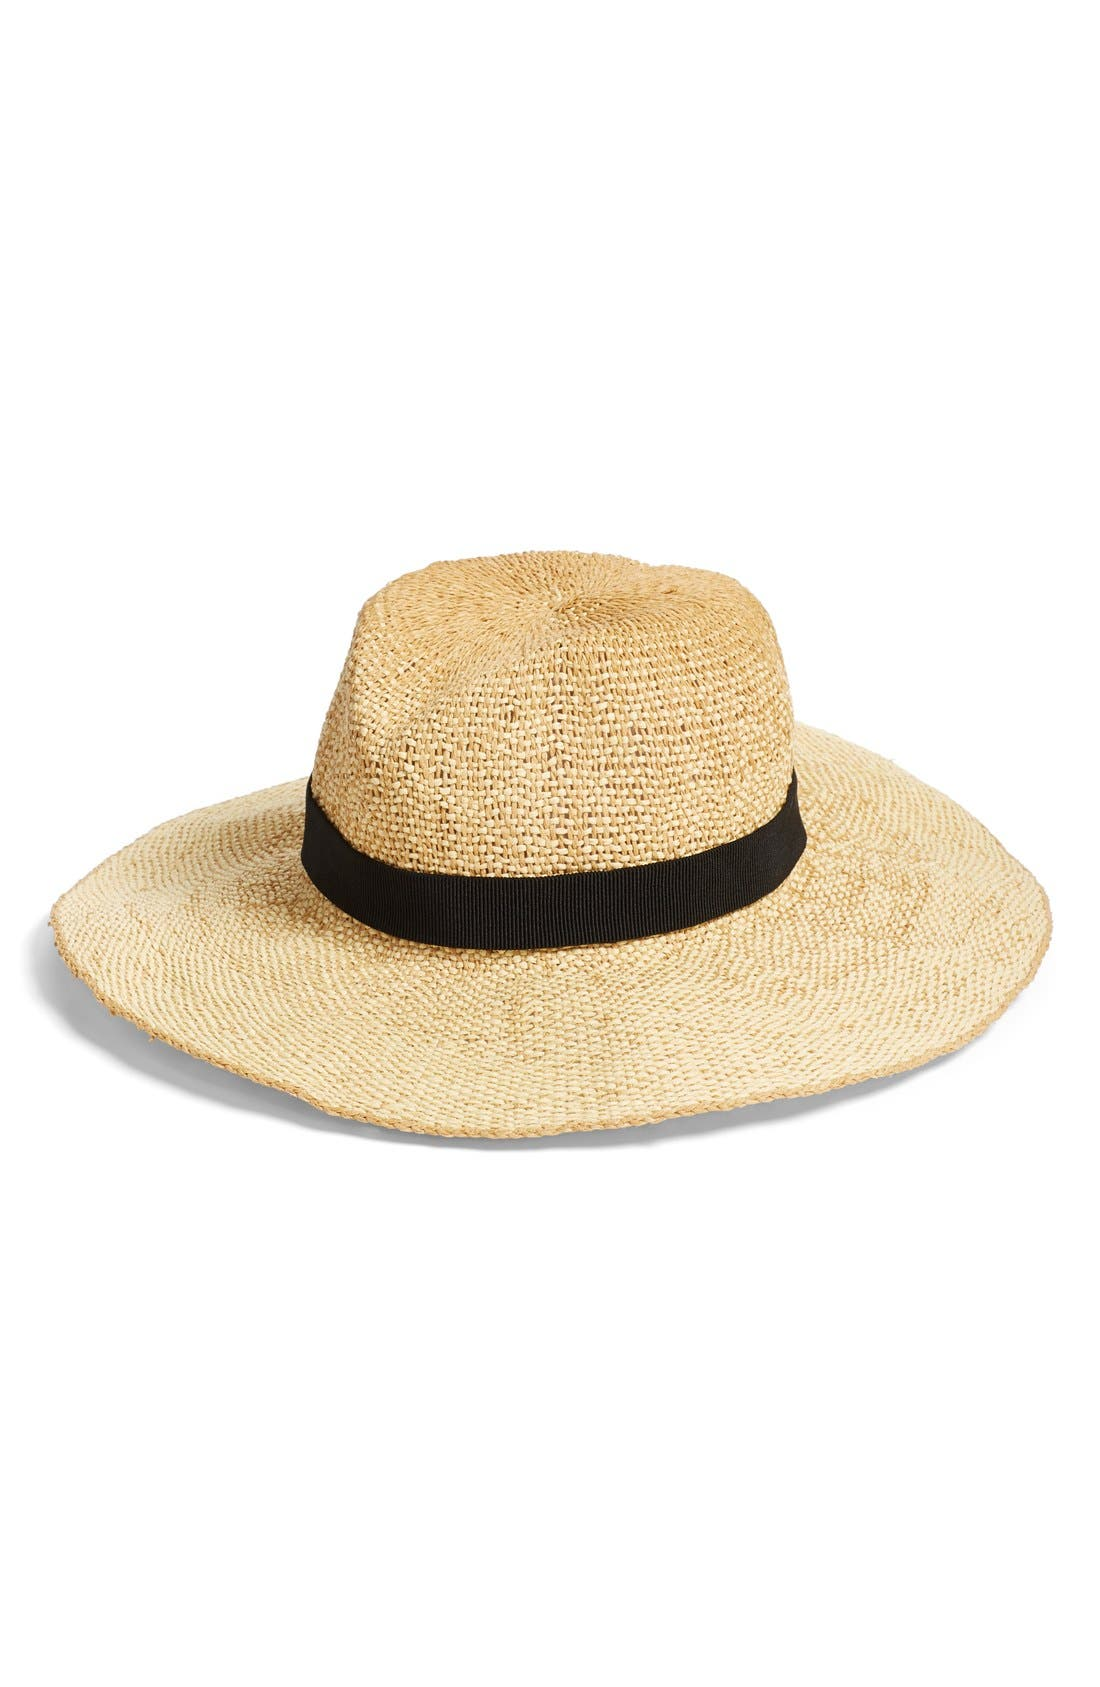 Alternate Image 1 Selected - Madewell Packable Straw Hat